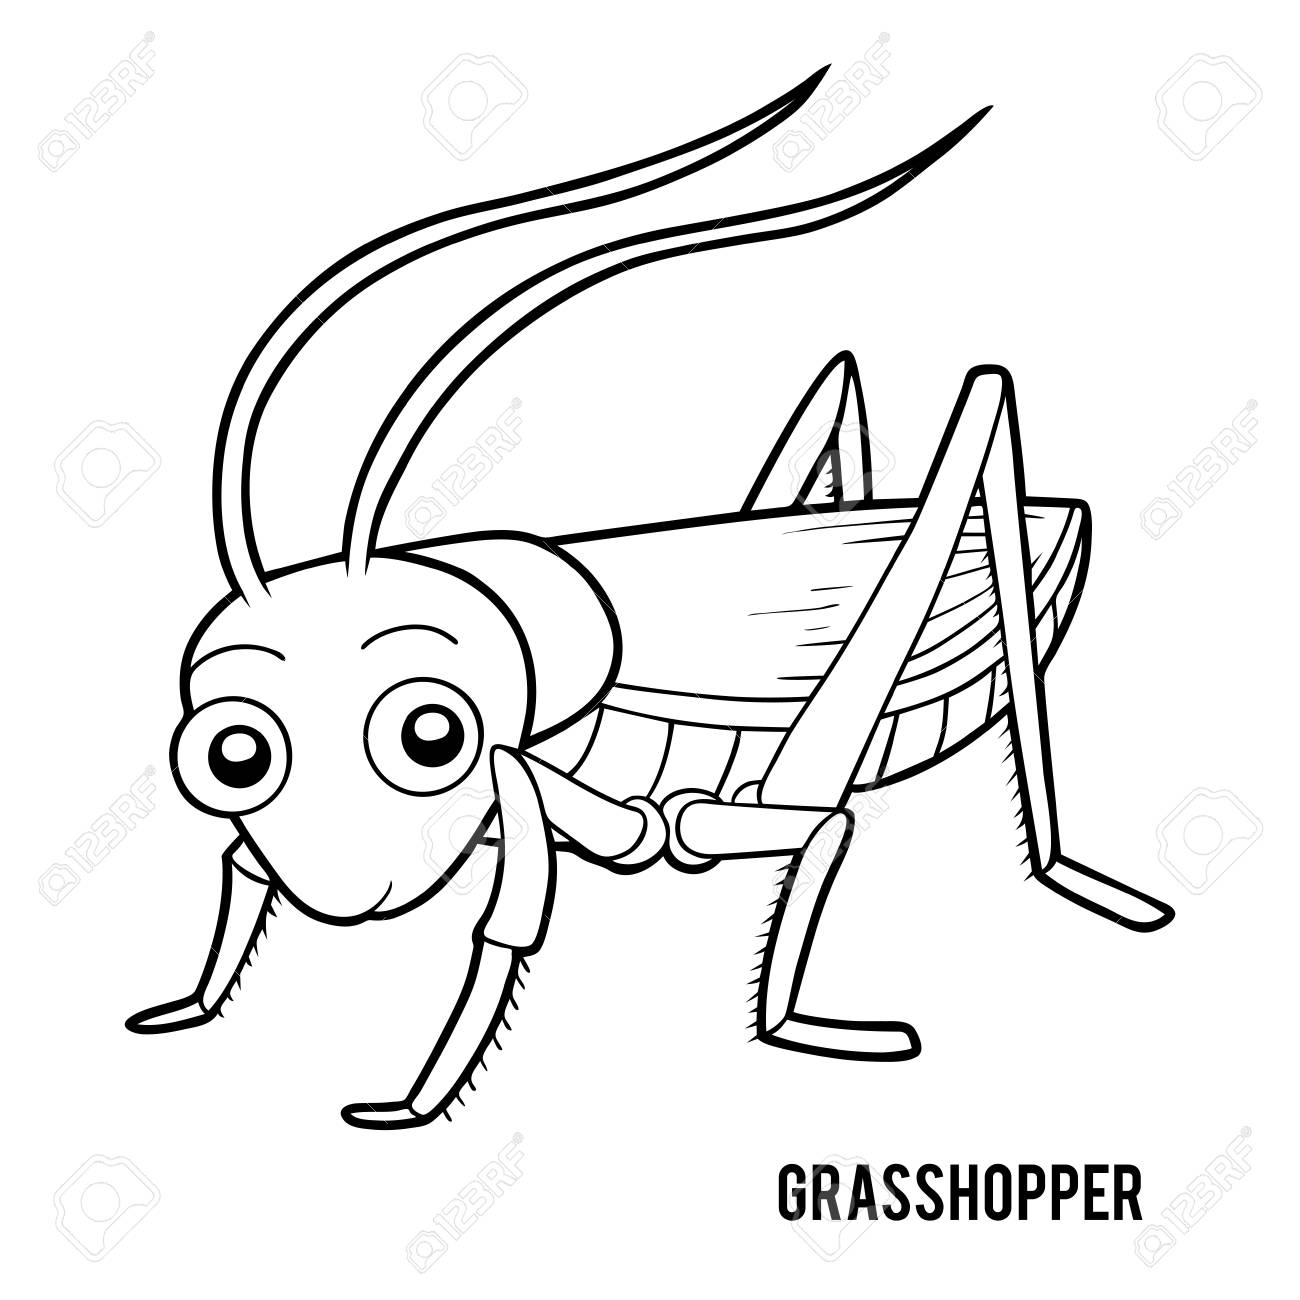 coloring book for children grasshopper royalty free cliparts vectors and stock illustration image 121471660 coloring book for children grasshopper royalty free cliparts vectors and stock illustration image 121471660